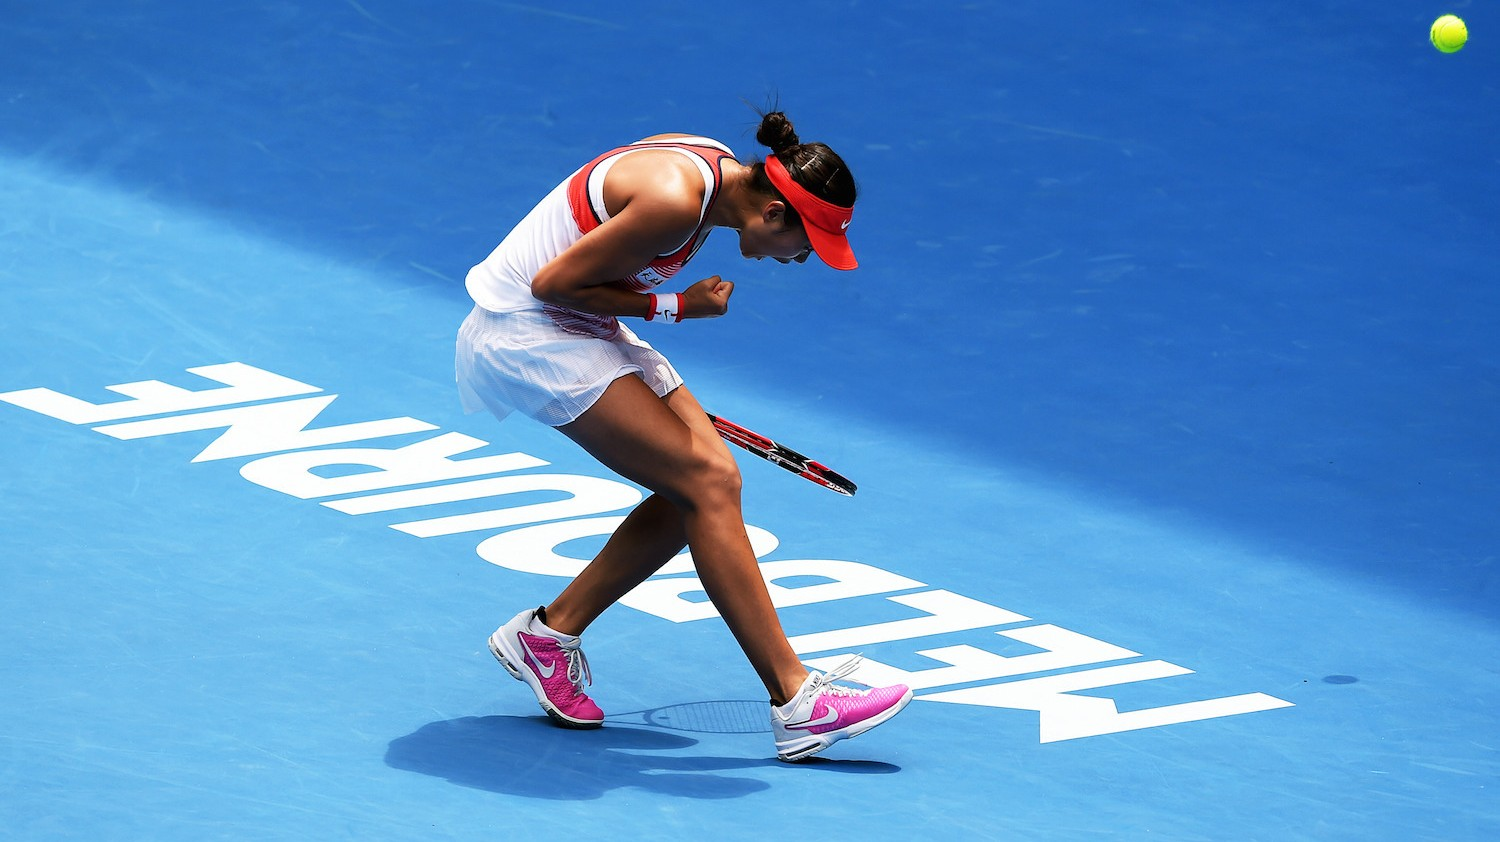 Stop Freaking Out About Upsets in Women's Tennis